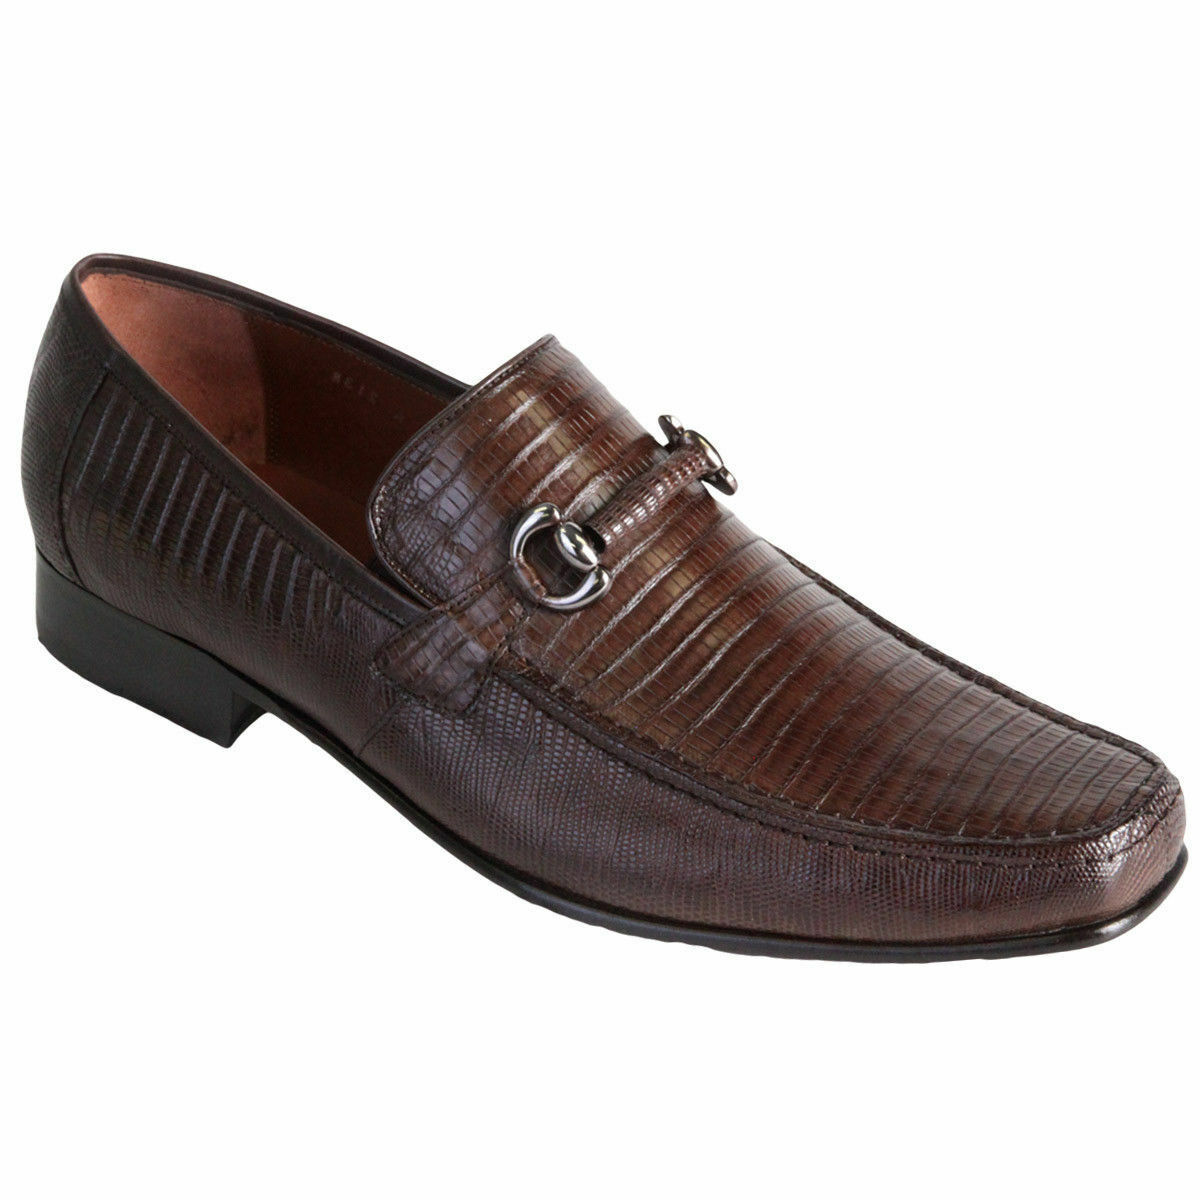 qualità di prima classe Los Altos Altos Altos Uomo Marrone Genuine Teju Lizard Dress scarpe Casual Slip On Loafer D  fantastica qualità